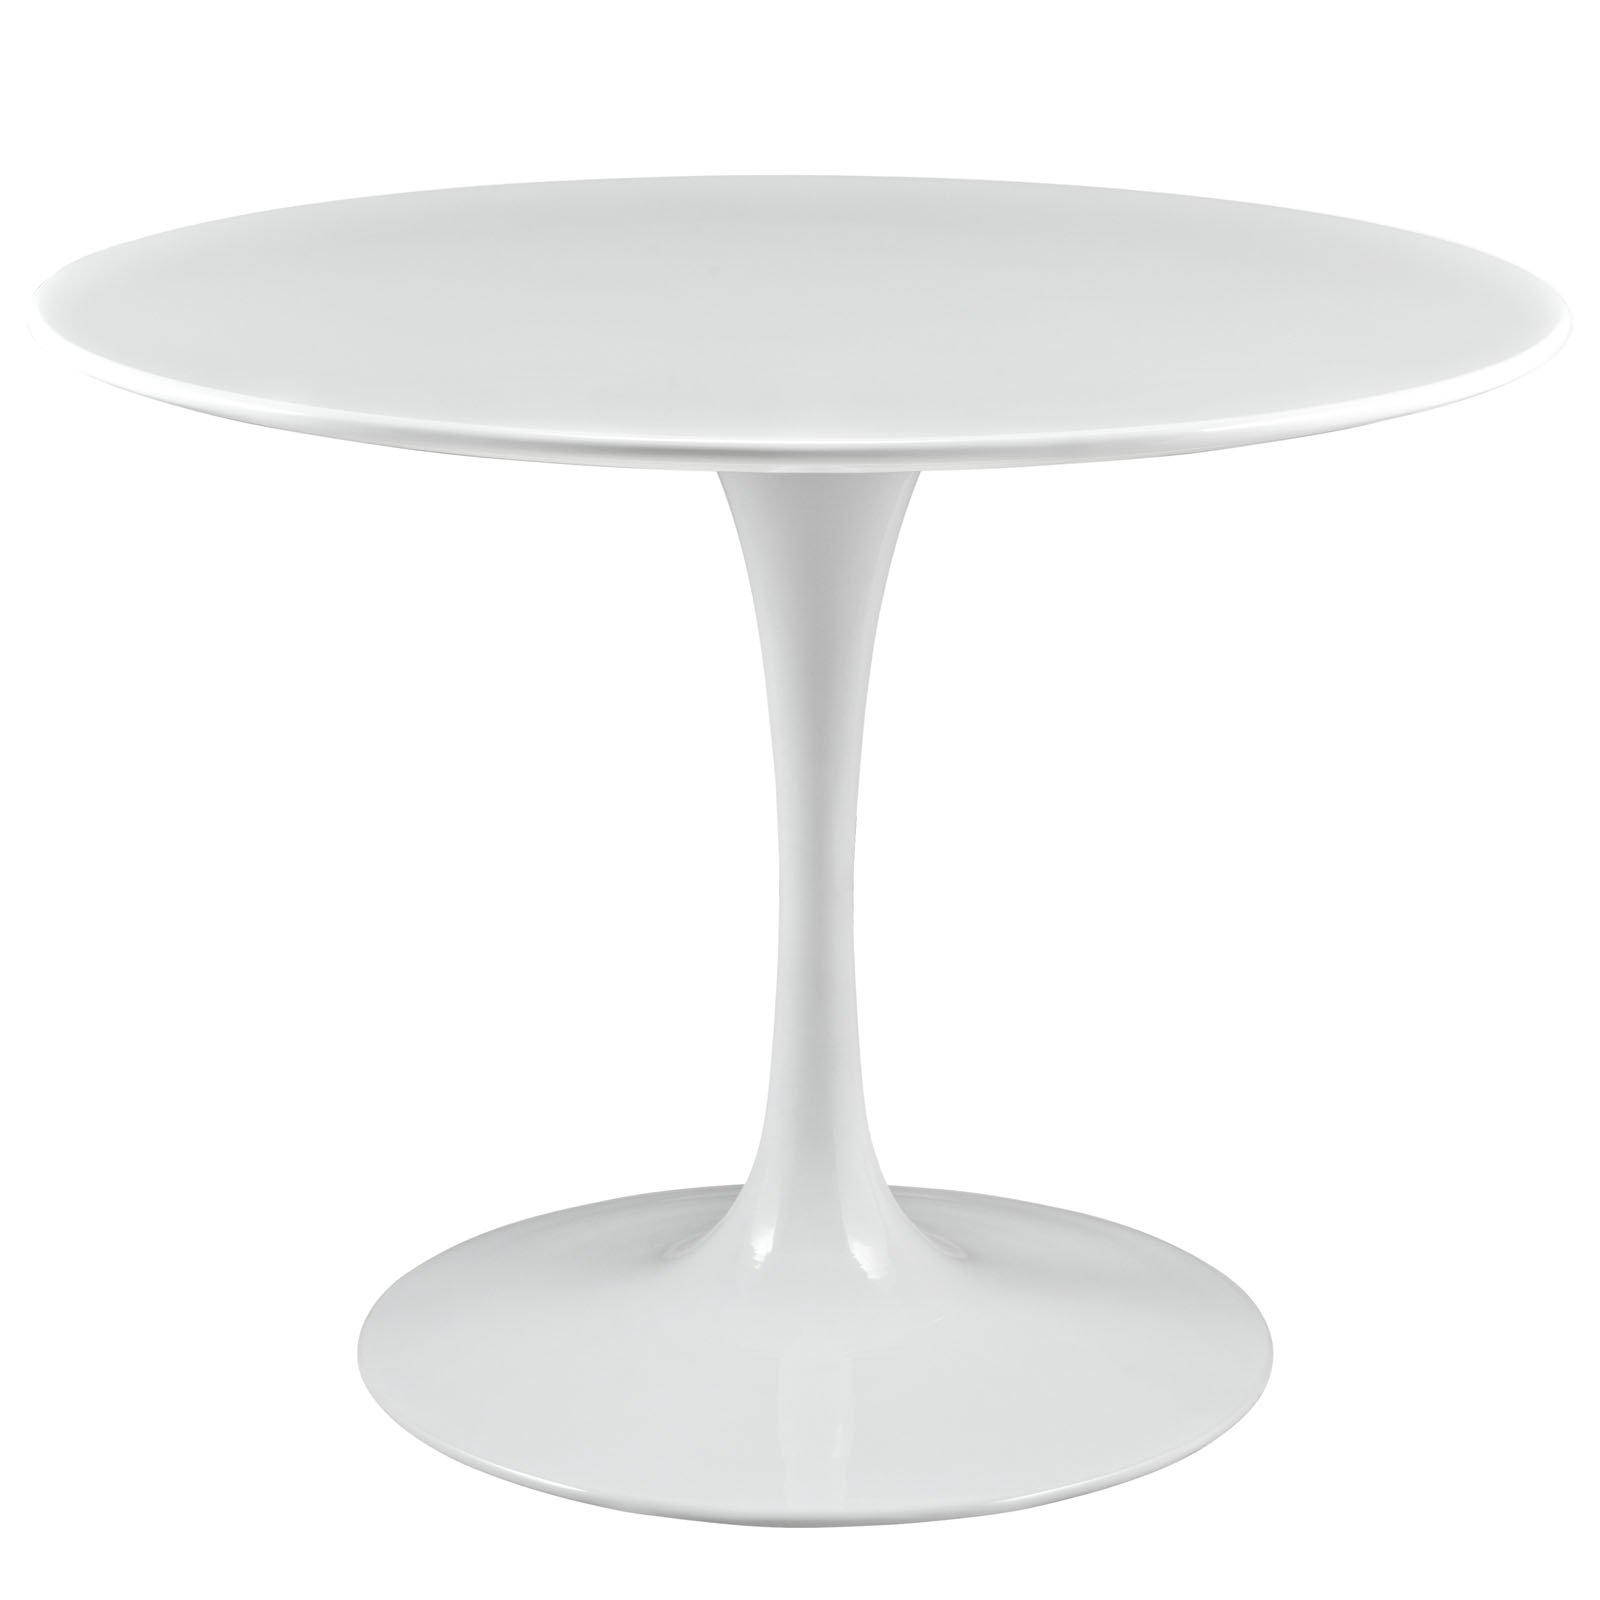 Modway Lippa 40'' Mid-Century Modern Kitchen and Dining Table with Round Top and Pedestal Base in White by Modway